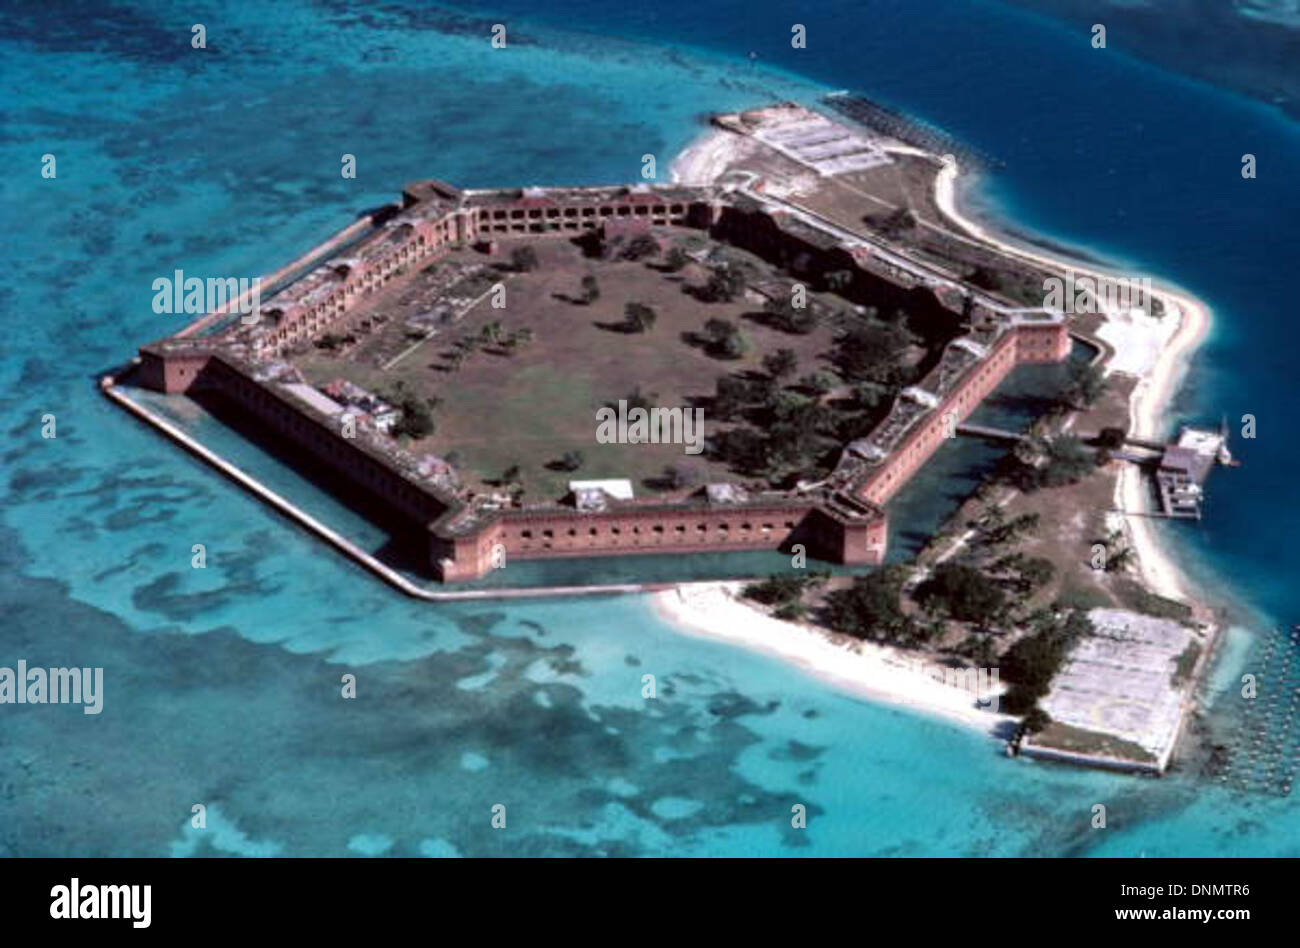 Aerial view of fort jefferson garden key dry tortugas florida stock photo 64997386 alamy for Garden key dry tortugas national park